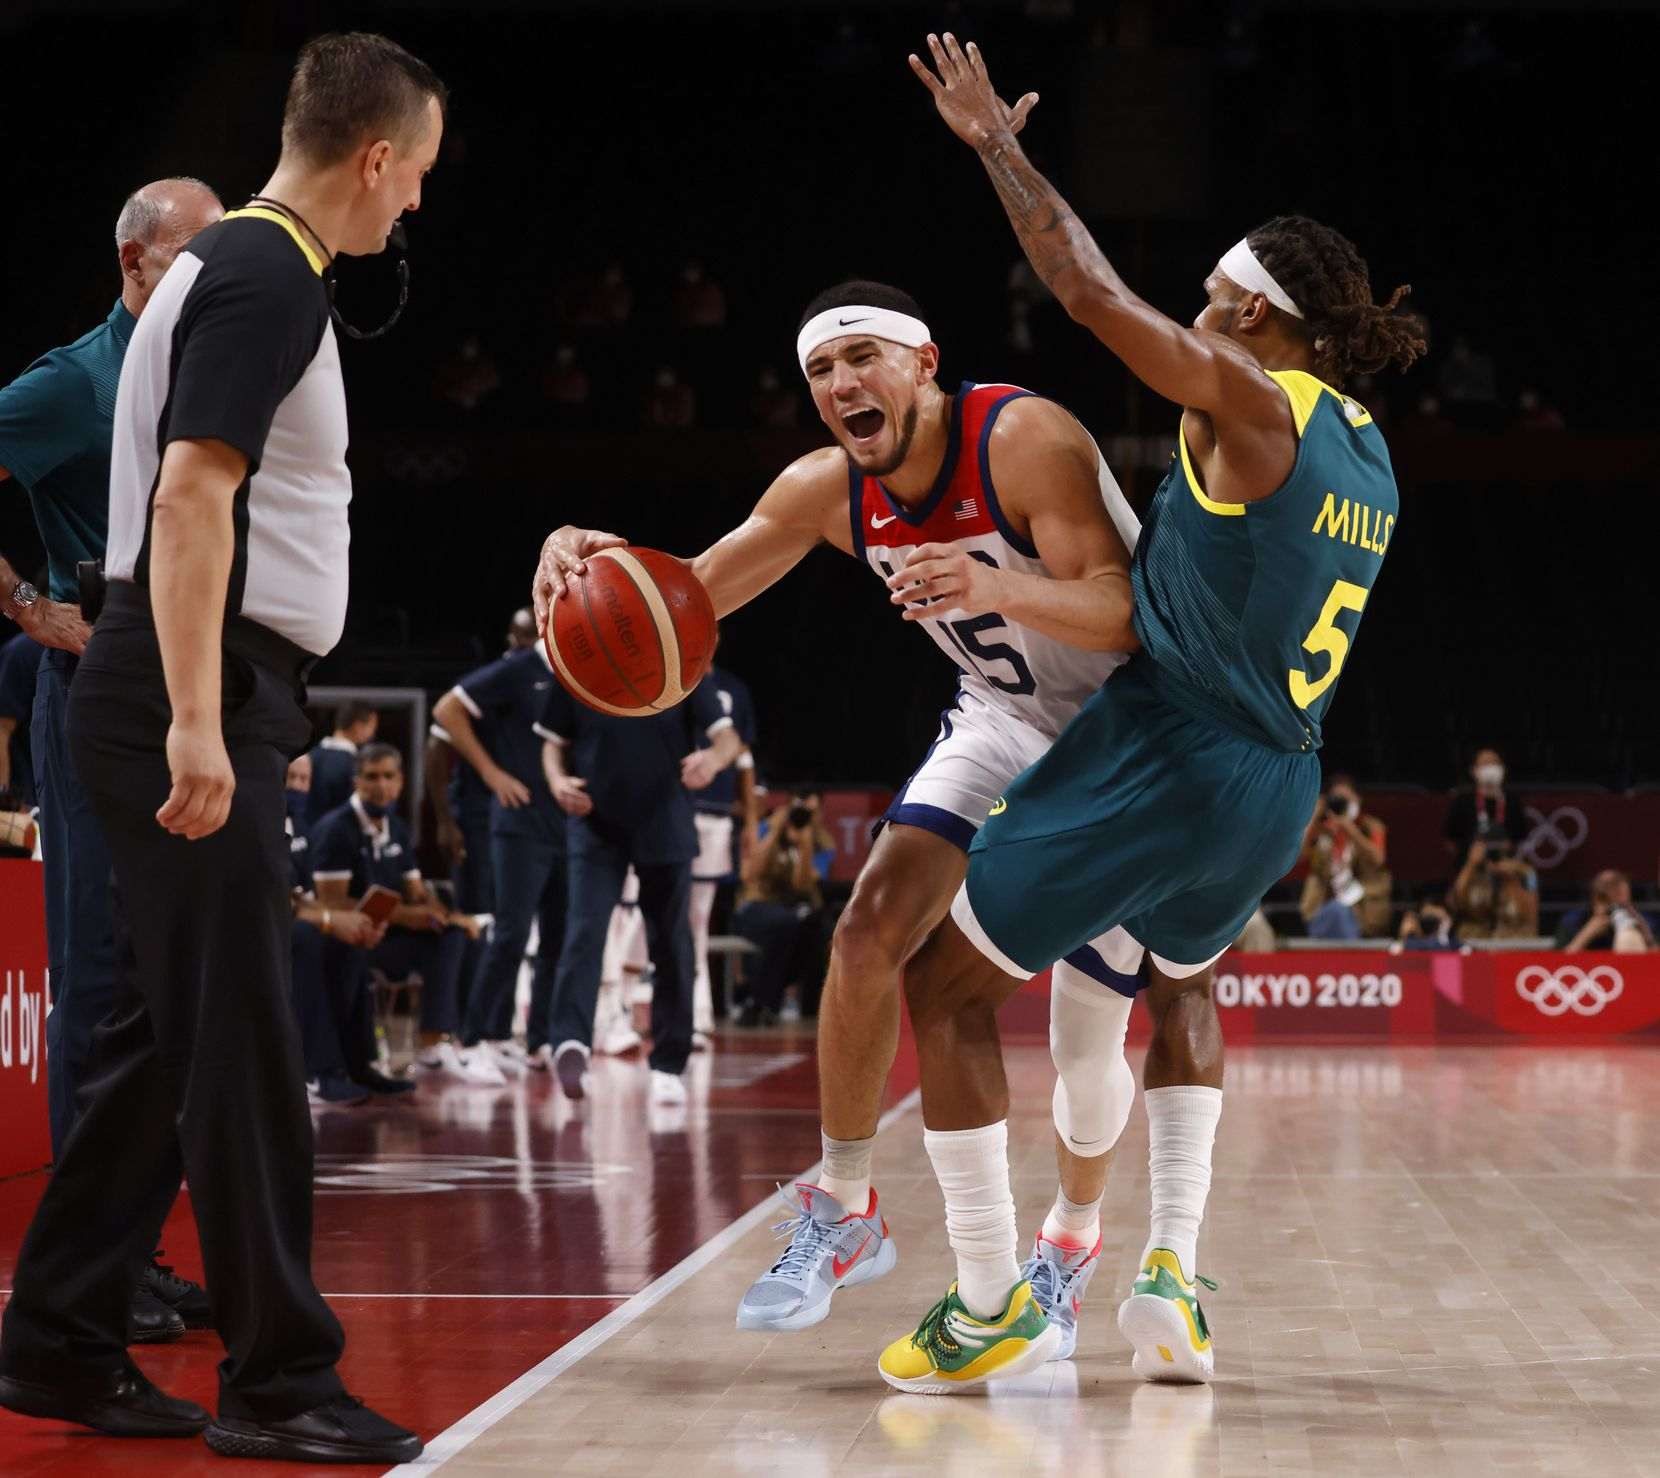 USA's Devin Booker is fouled by Australia's Patty Mills (5) during the second half of a men's basketball semifinal at the postponed 2020 Tokyo Olympics at Saitama Super Arena, on Thursday, August 5, 2021, in Saitama, Japan. USA defeated Australia 97-78 to advance to the gold medal game. (Vernon Bryant/The Dallas Morning News)